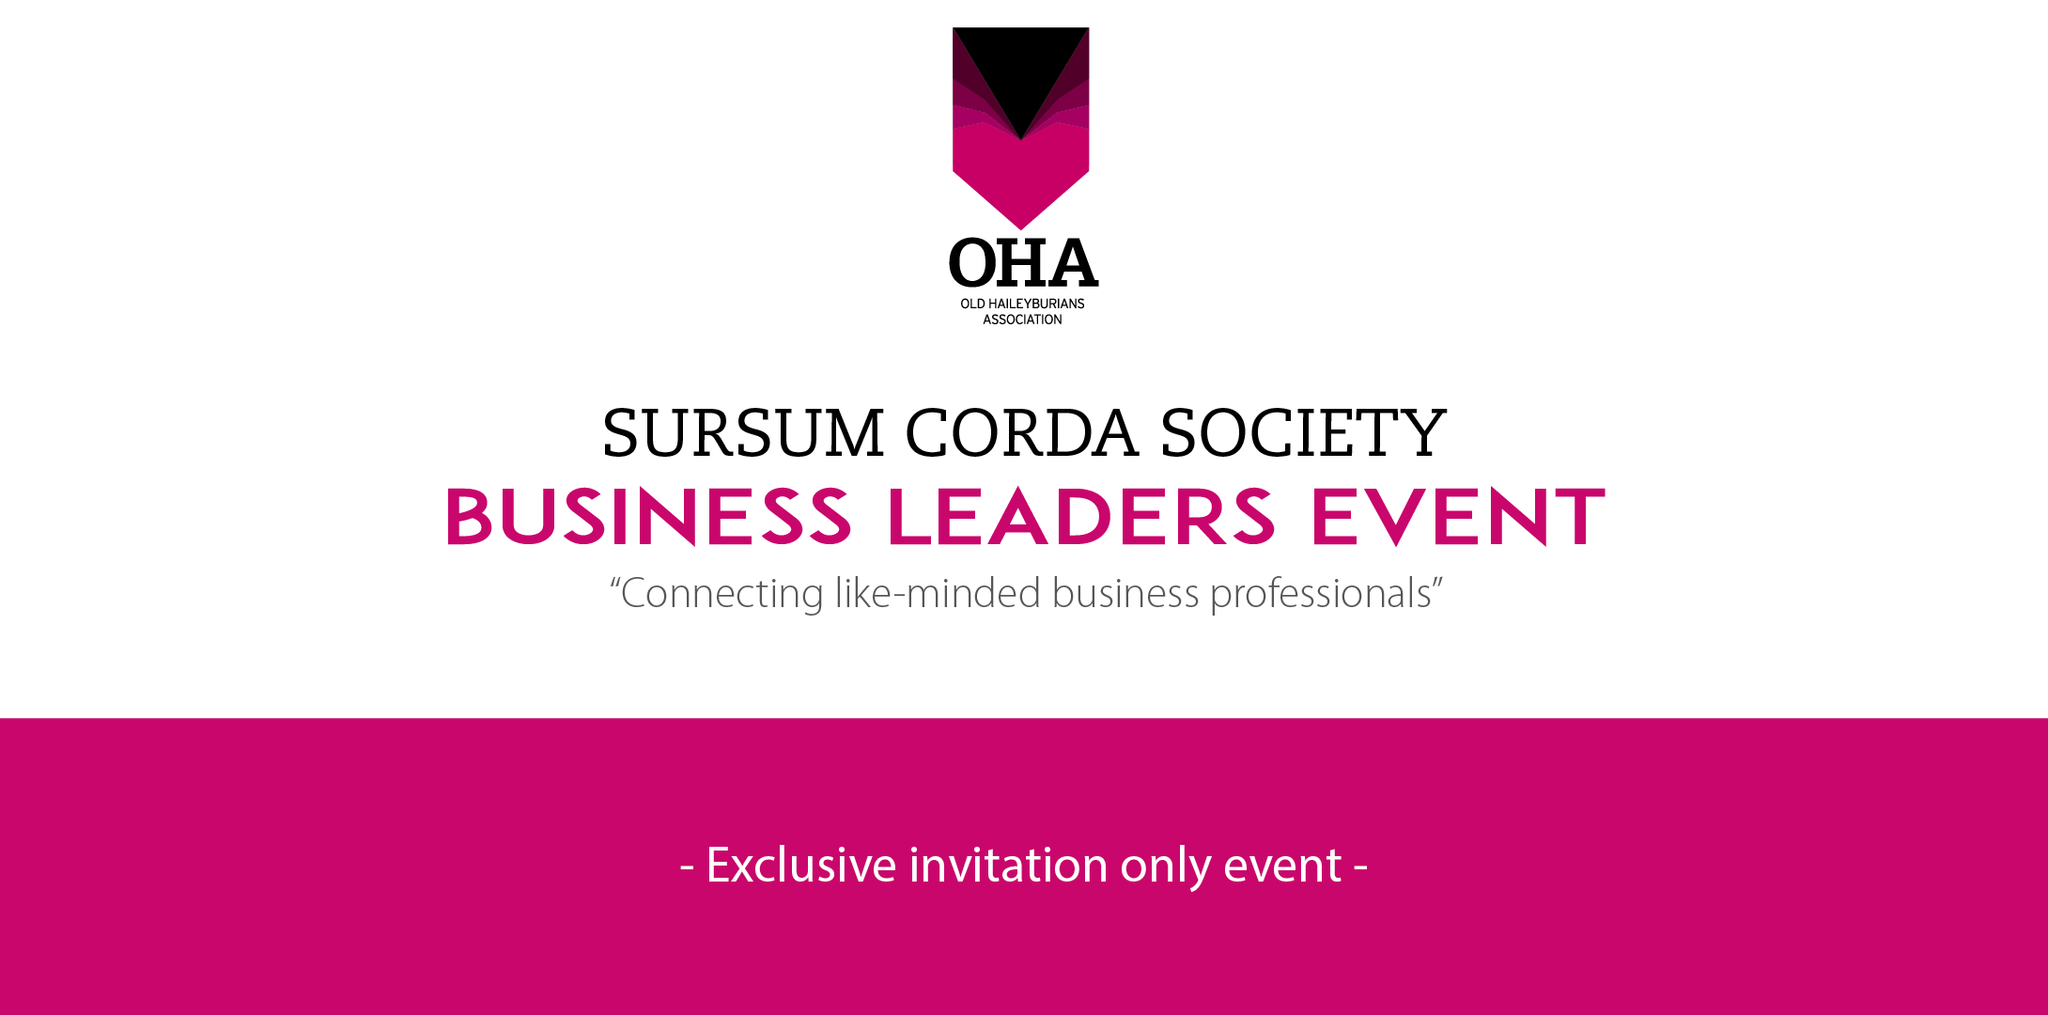 Sursum Corda Society - Business Leaders Event